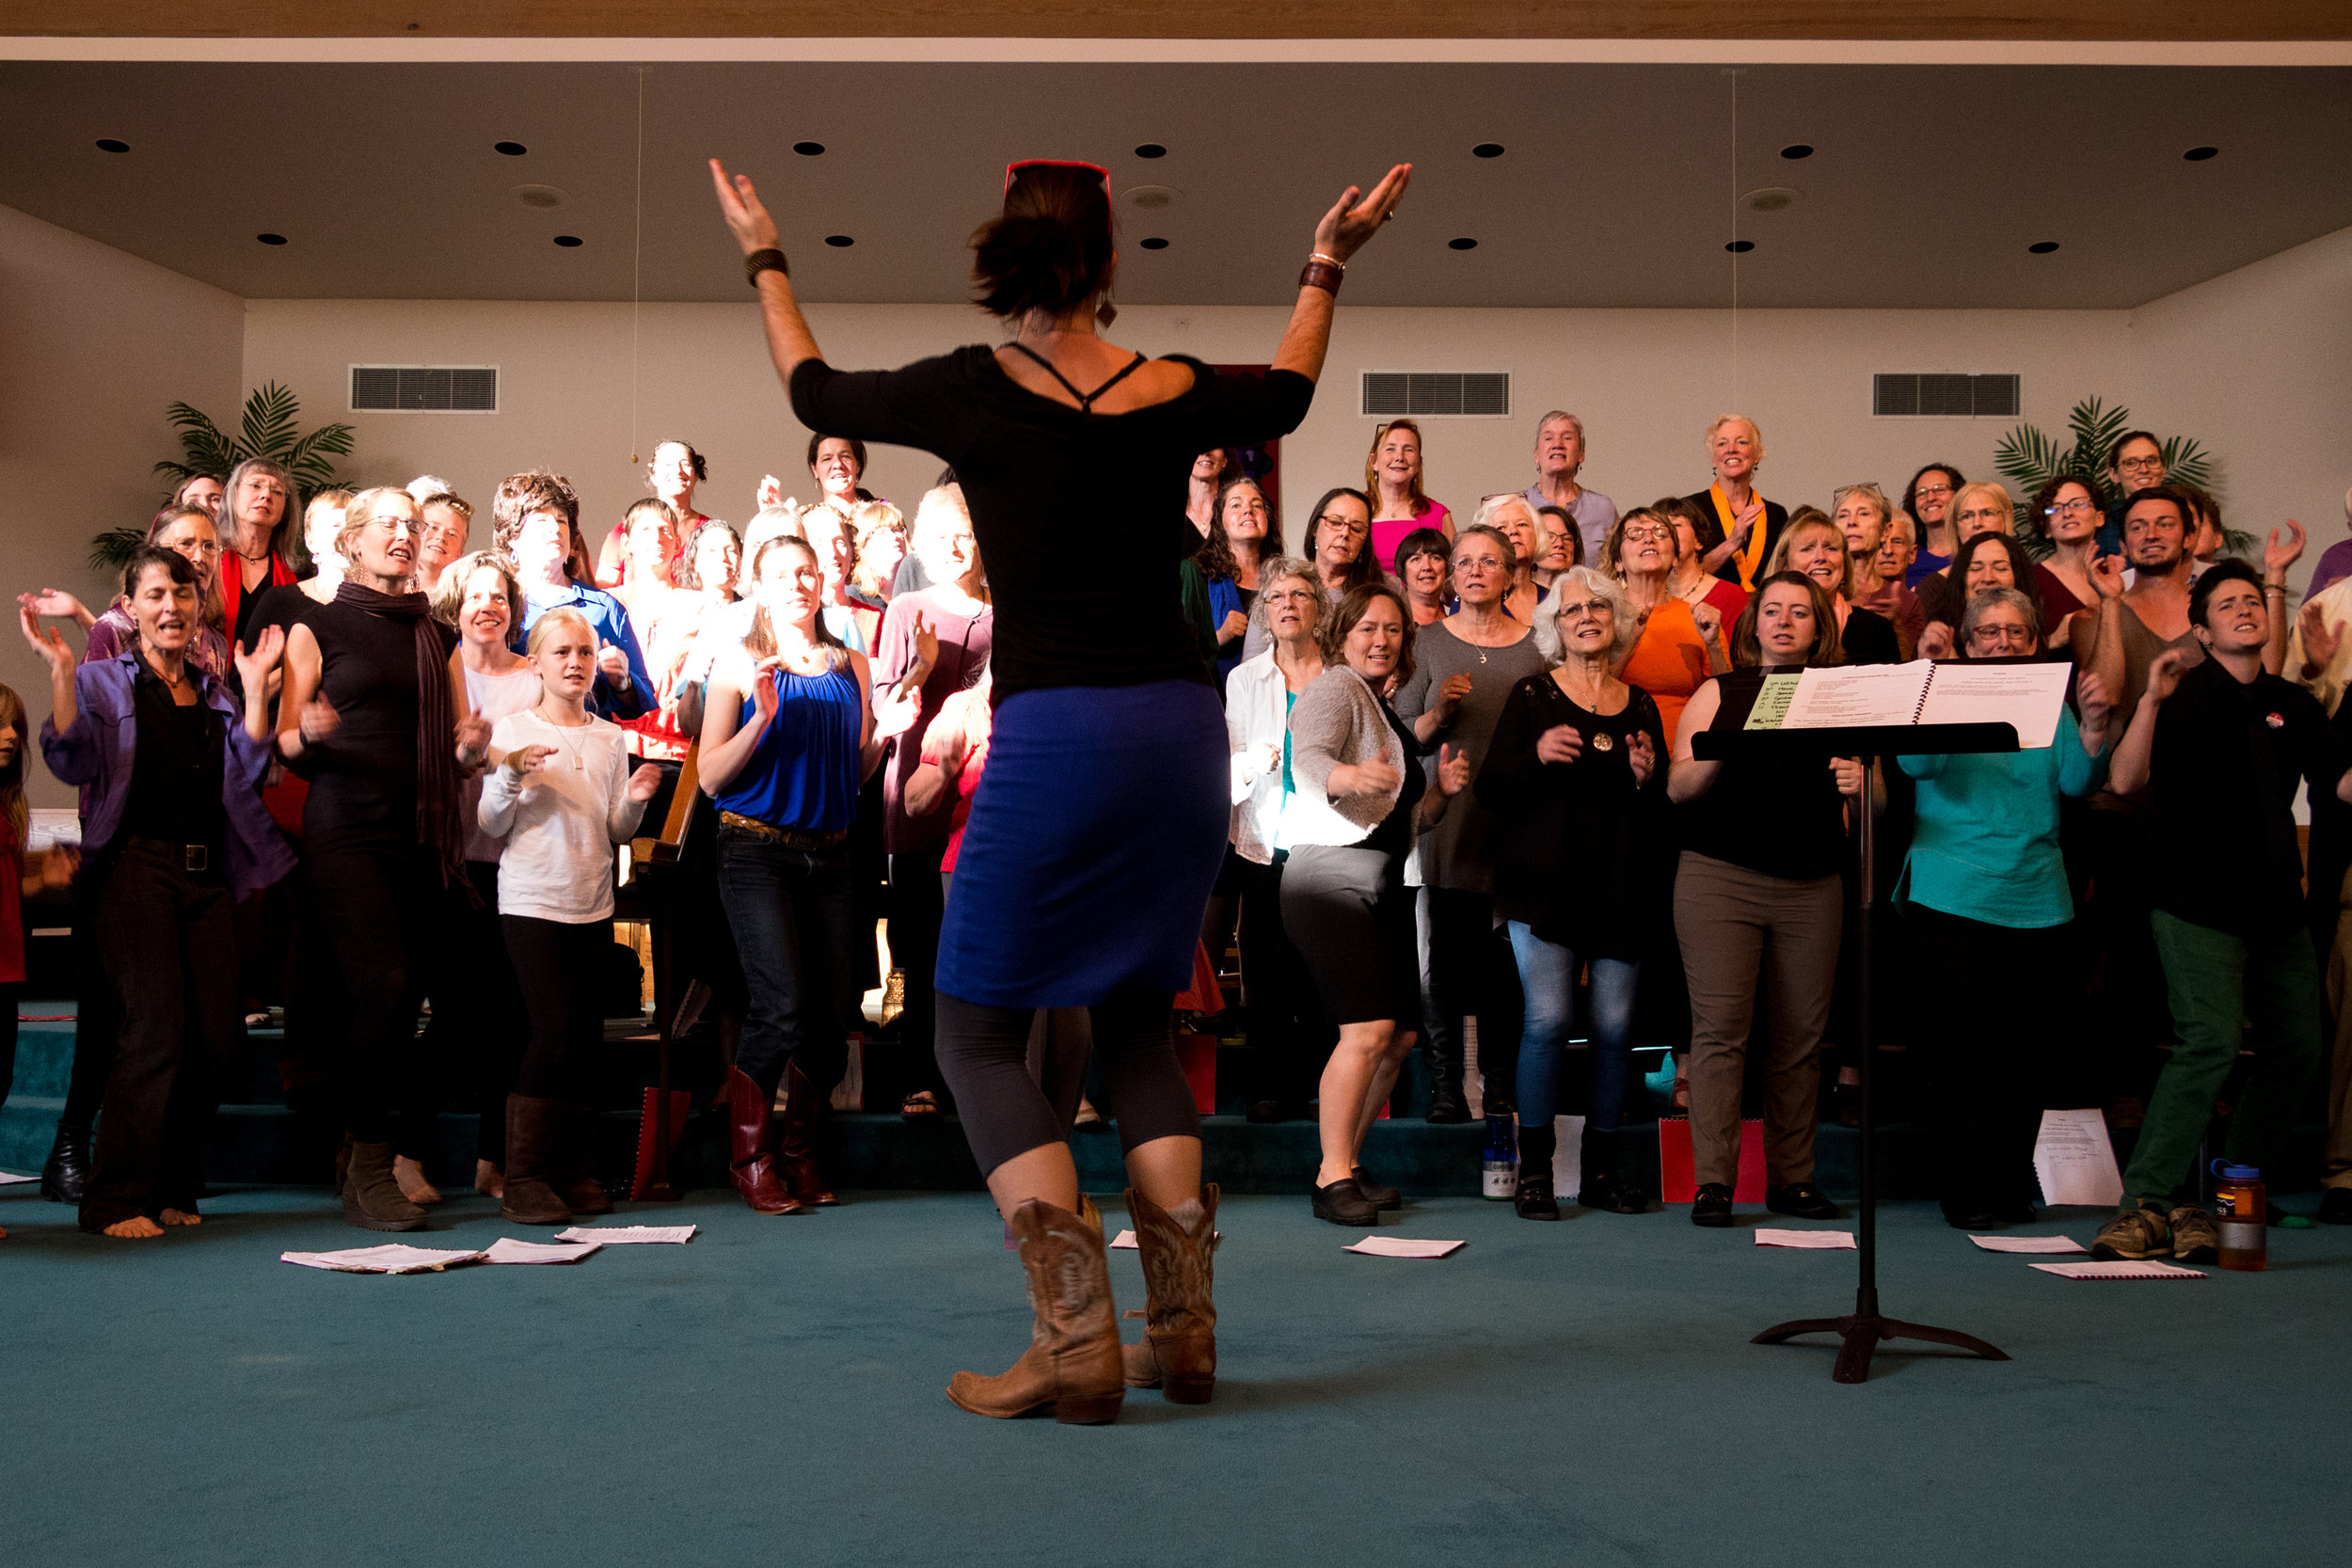 Join WACC! - We welcome new singers to join WACC at the start of each new season. Pre-registration is required.No auditions are held. If you want to sing, we want you to sing with us!We charge on a sliding scale of $120-$350 for the season. Don't let money stop you from joining. We have scholarship, barter and work-trade available.Registration for our Fall season runs August 9th - Sep 1st and is open to new and returning singers.Our Fall 2019 Season will begin Sep. 5th.